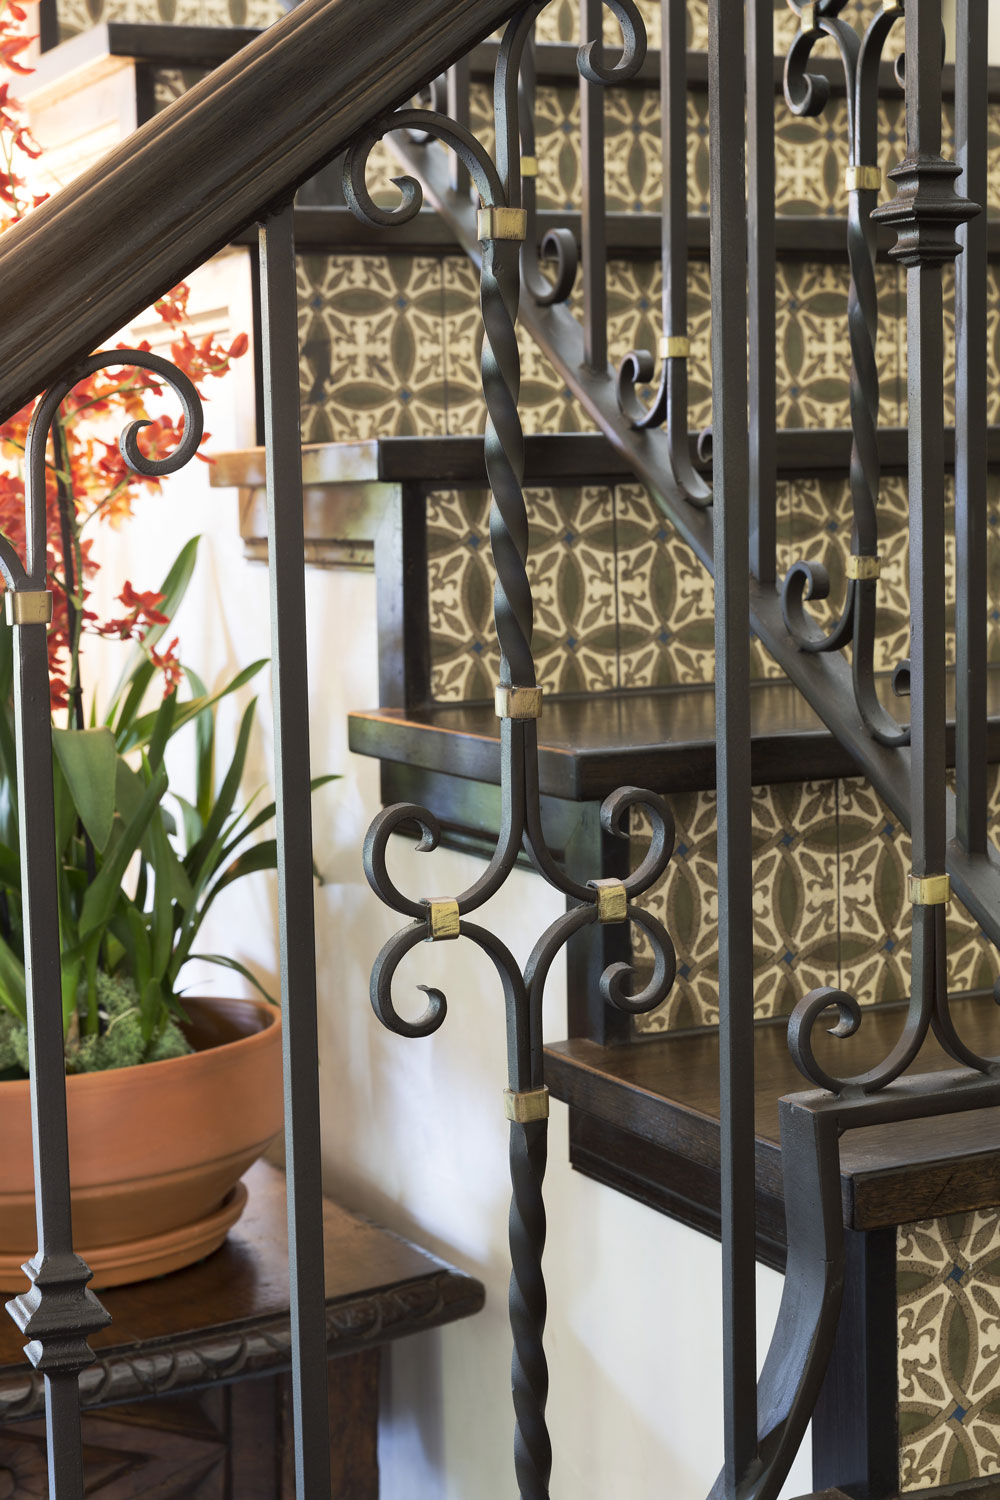 spanish-wrought-iron-staircase-railing-tile-premier.jpg